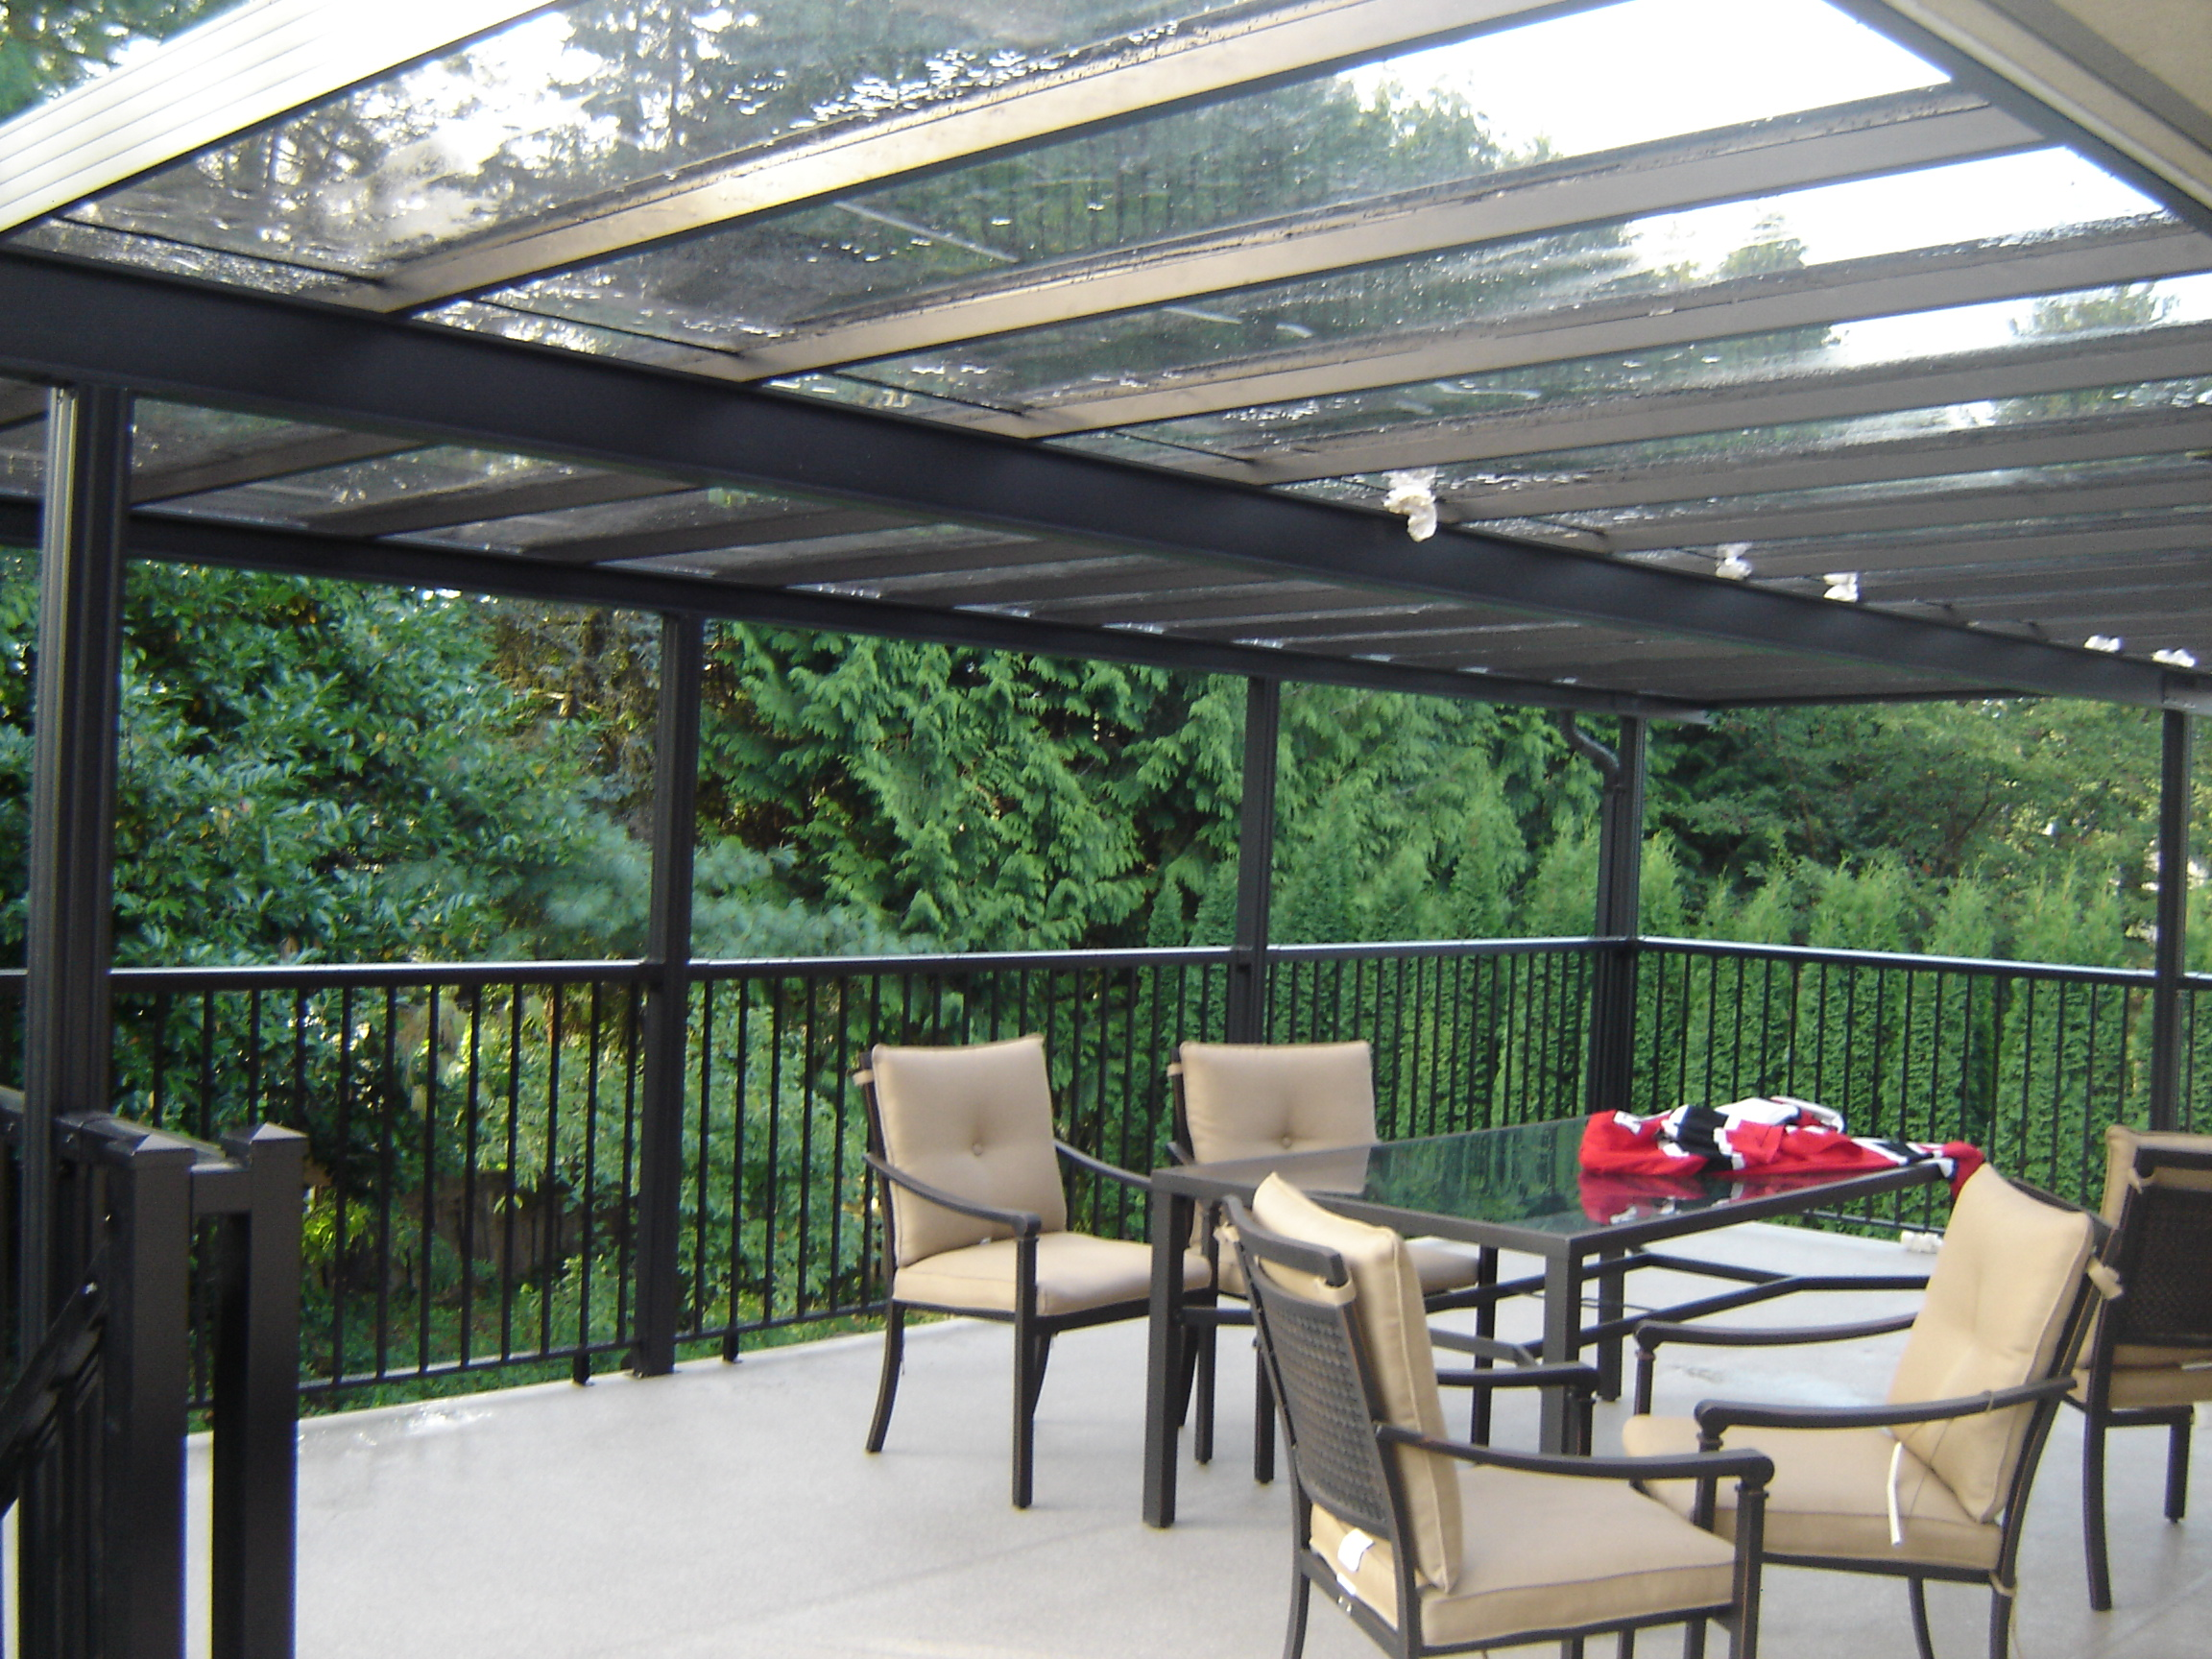 Backyard Patio Covers: From Usefulness To Style - HomesFeed on Backyard Patio  id=45186